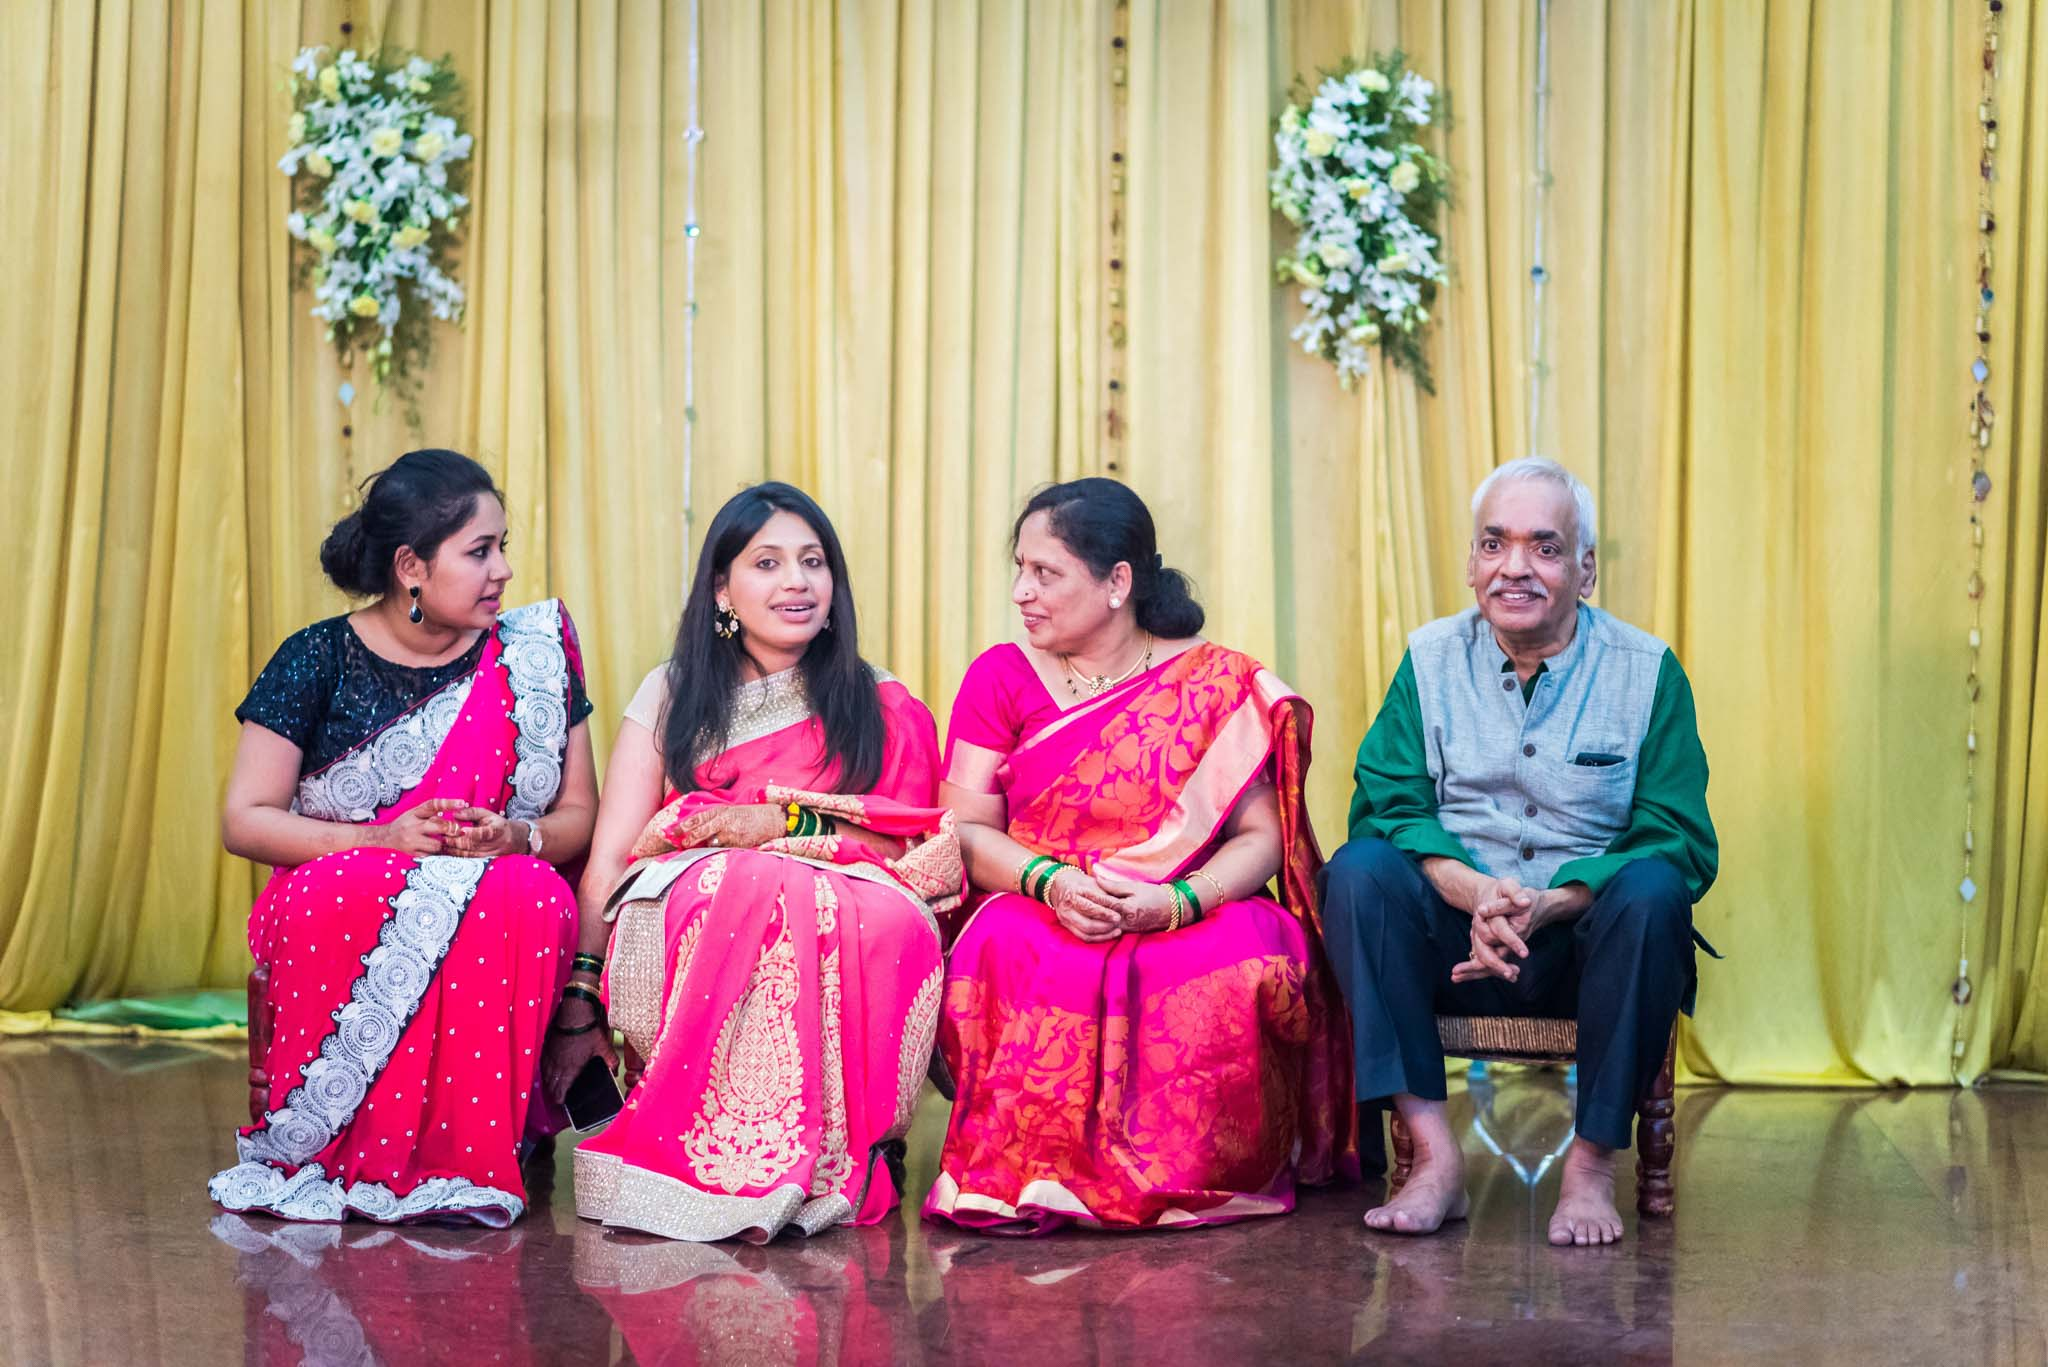 WhatKnot-Candid-Wedding-Photography-Mumbai-Bangalore-241